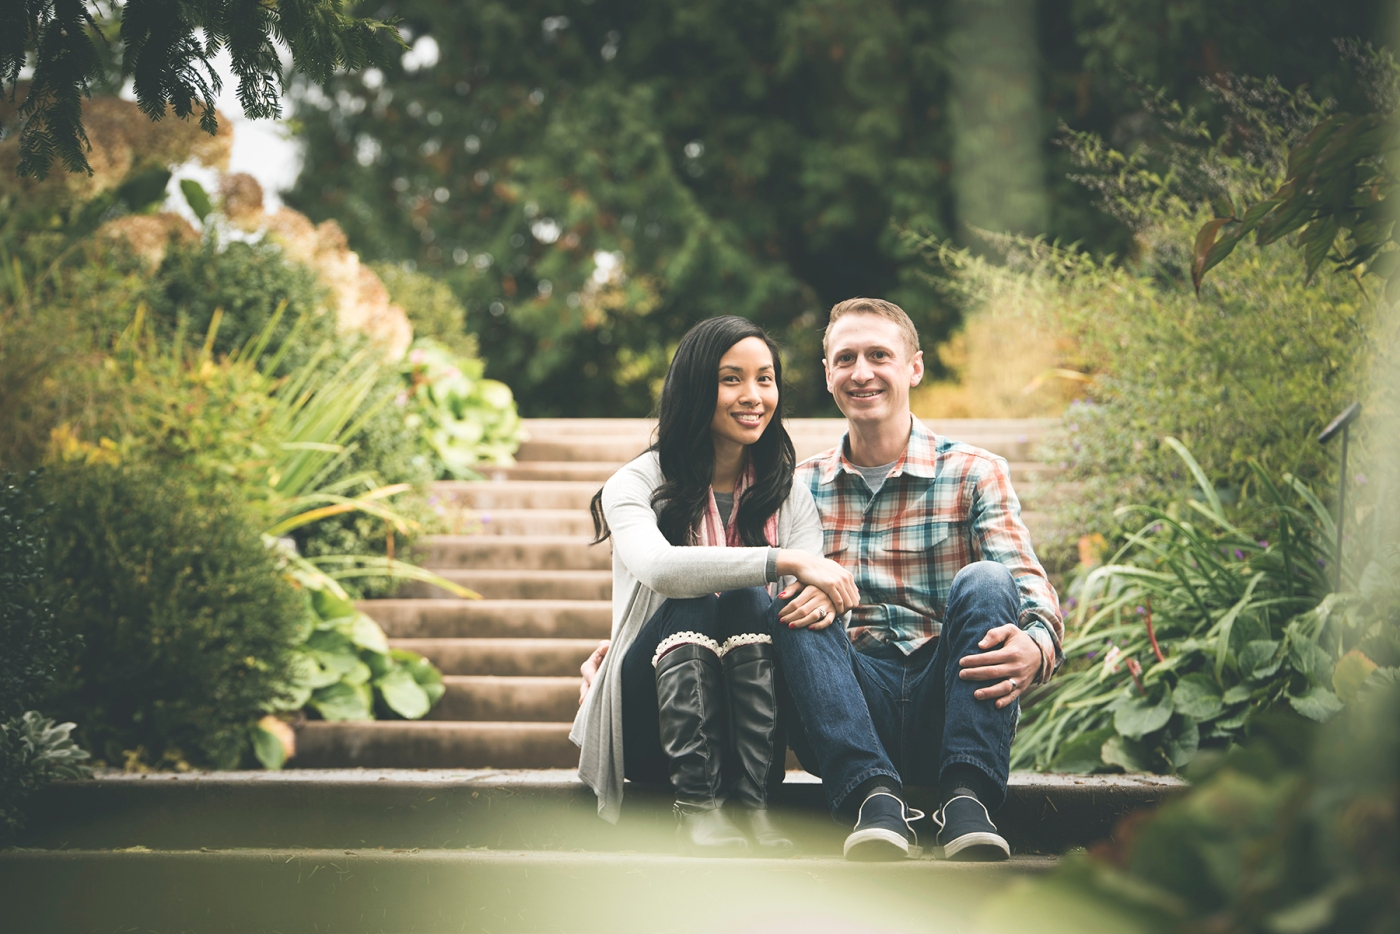 jane-speleers-photography-ju-bri-holiday-october-bellevue-botanical-garden-engagement-2016_dsc_5643